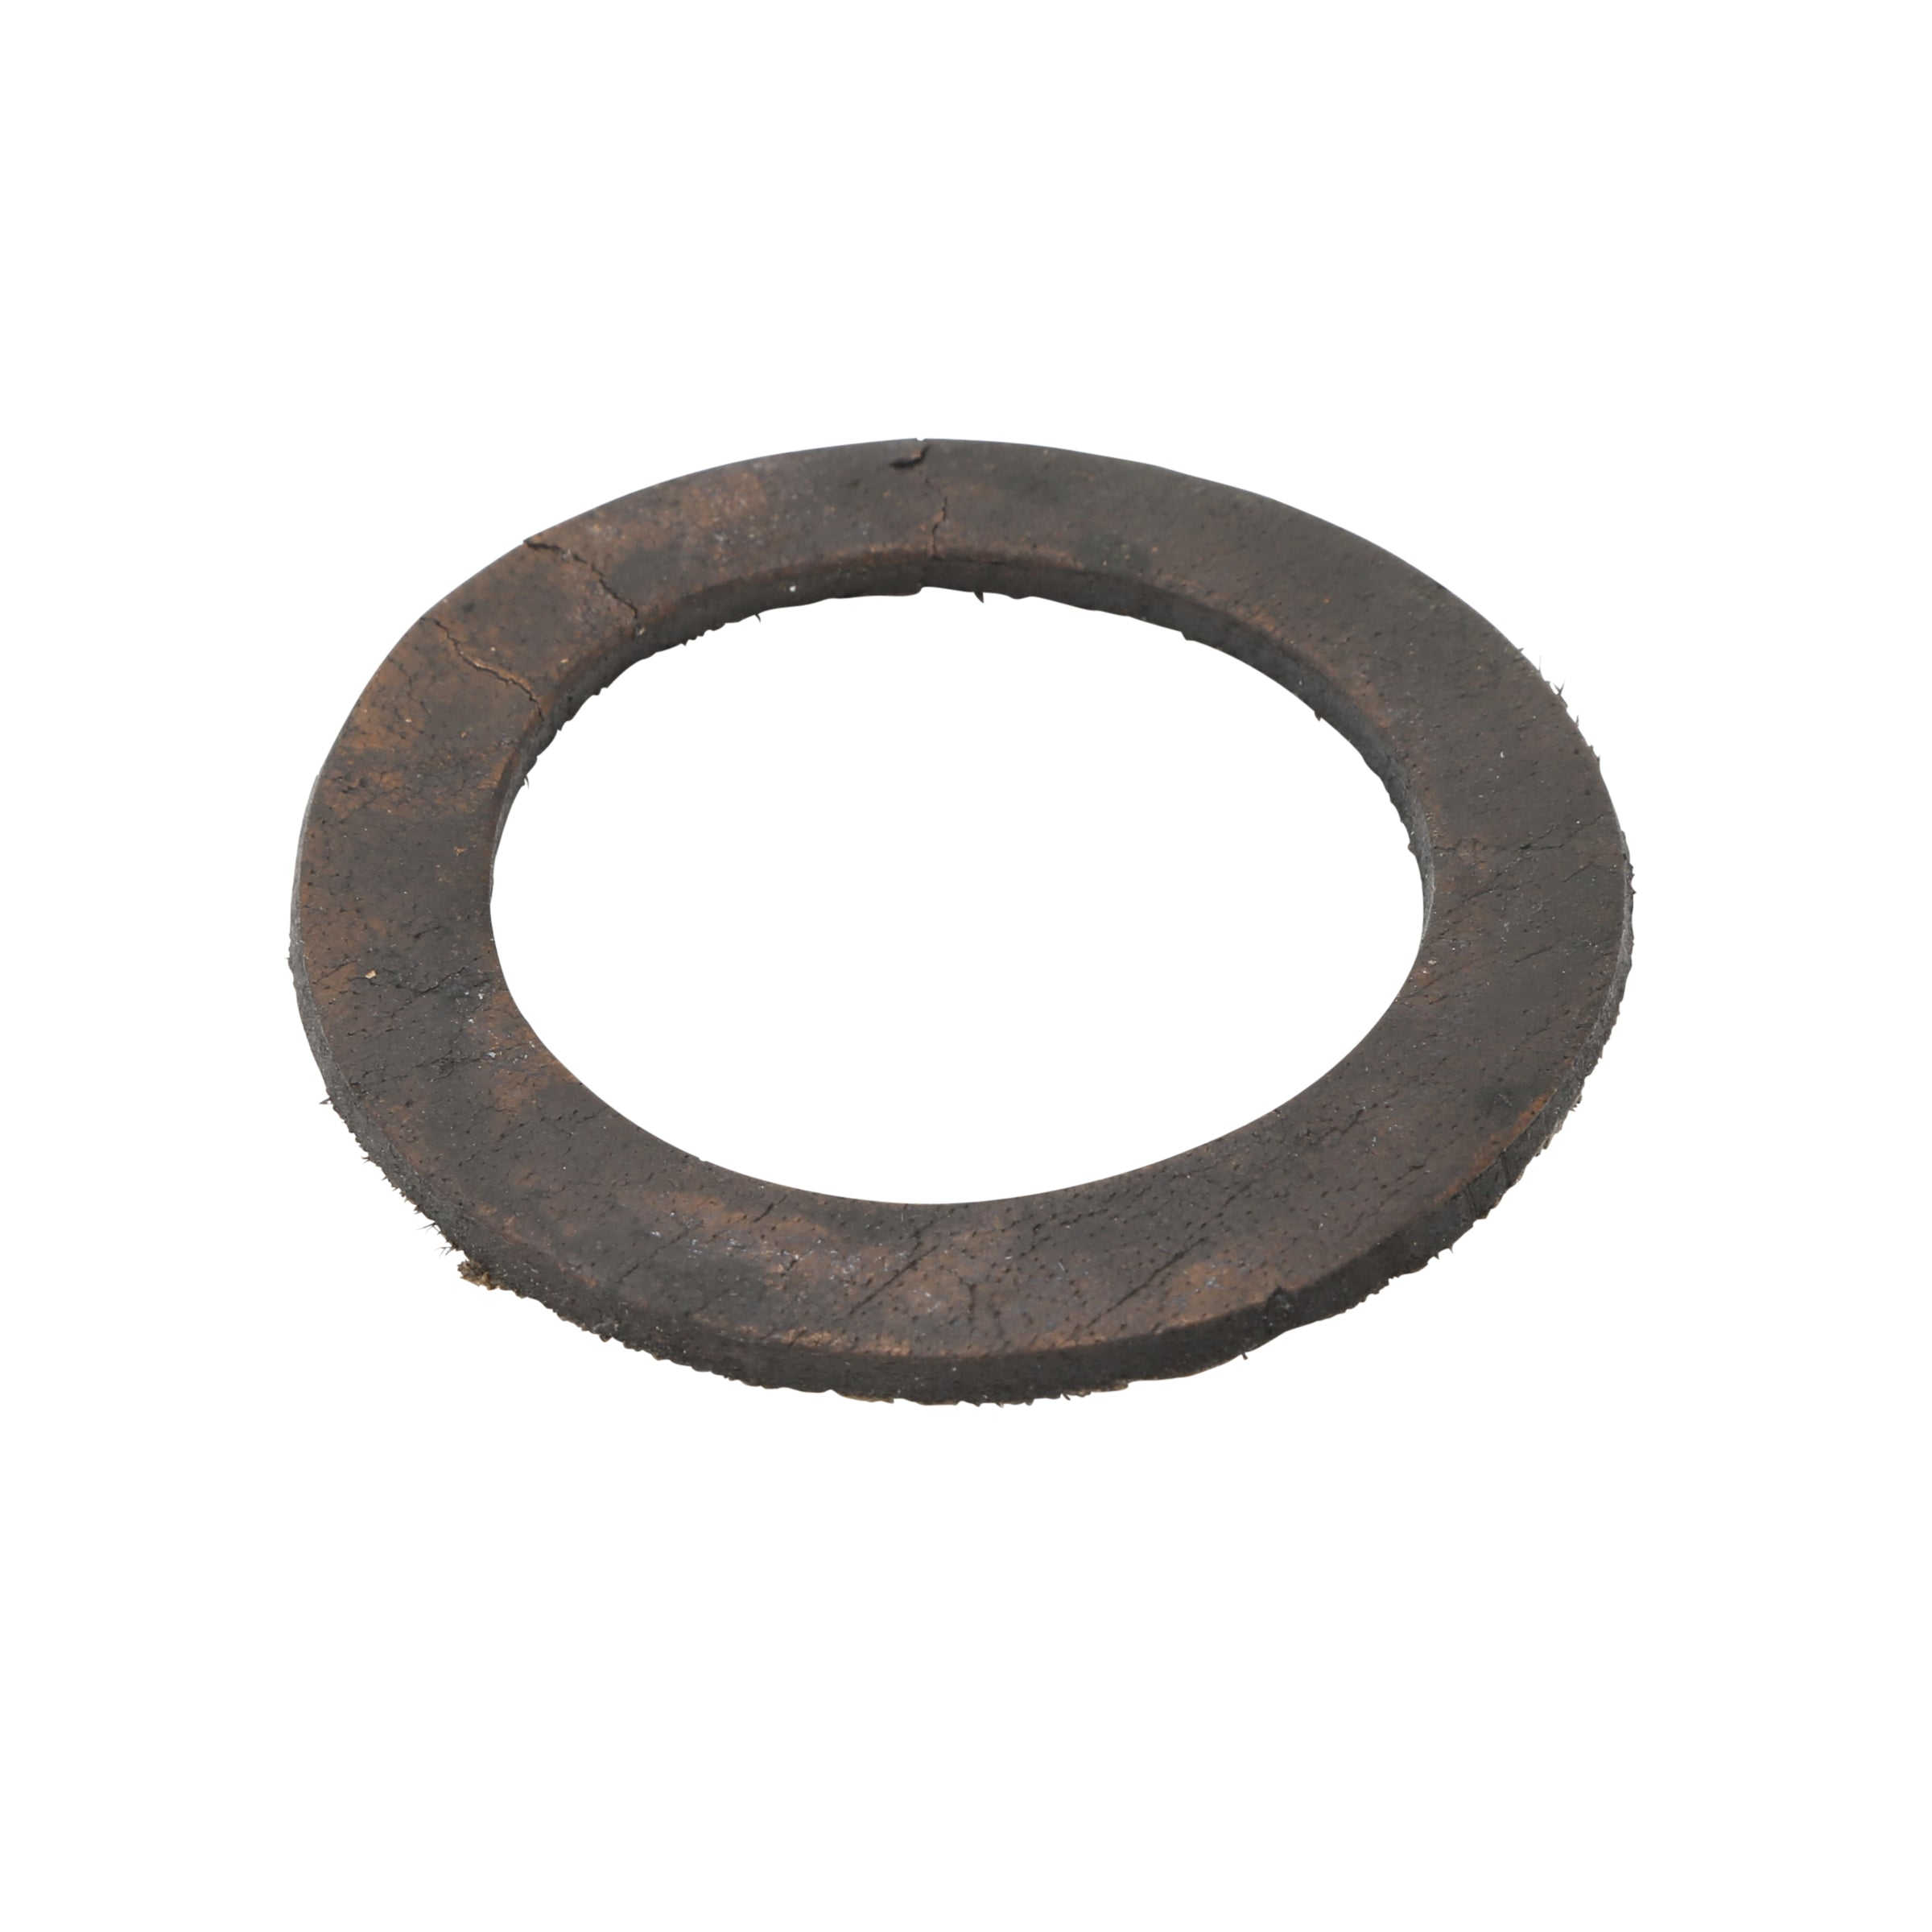 Radiator Cap Gasket • 1930-31 Model A Ford